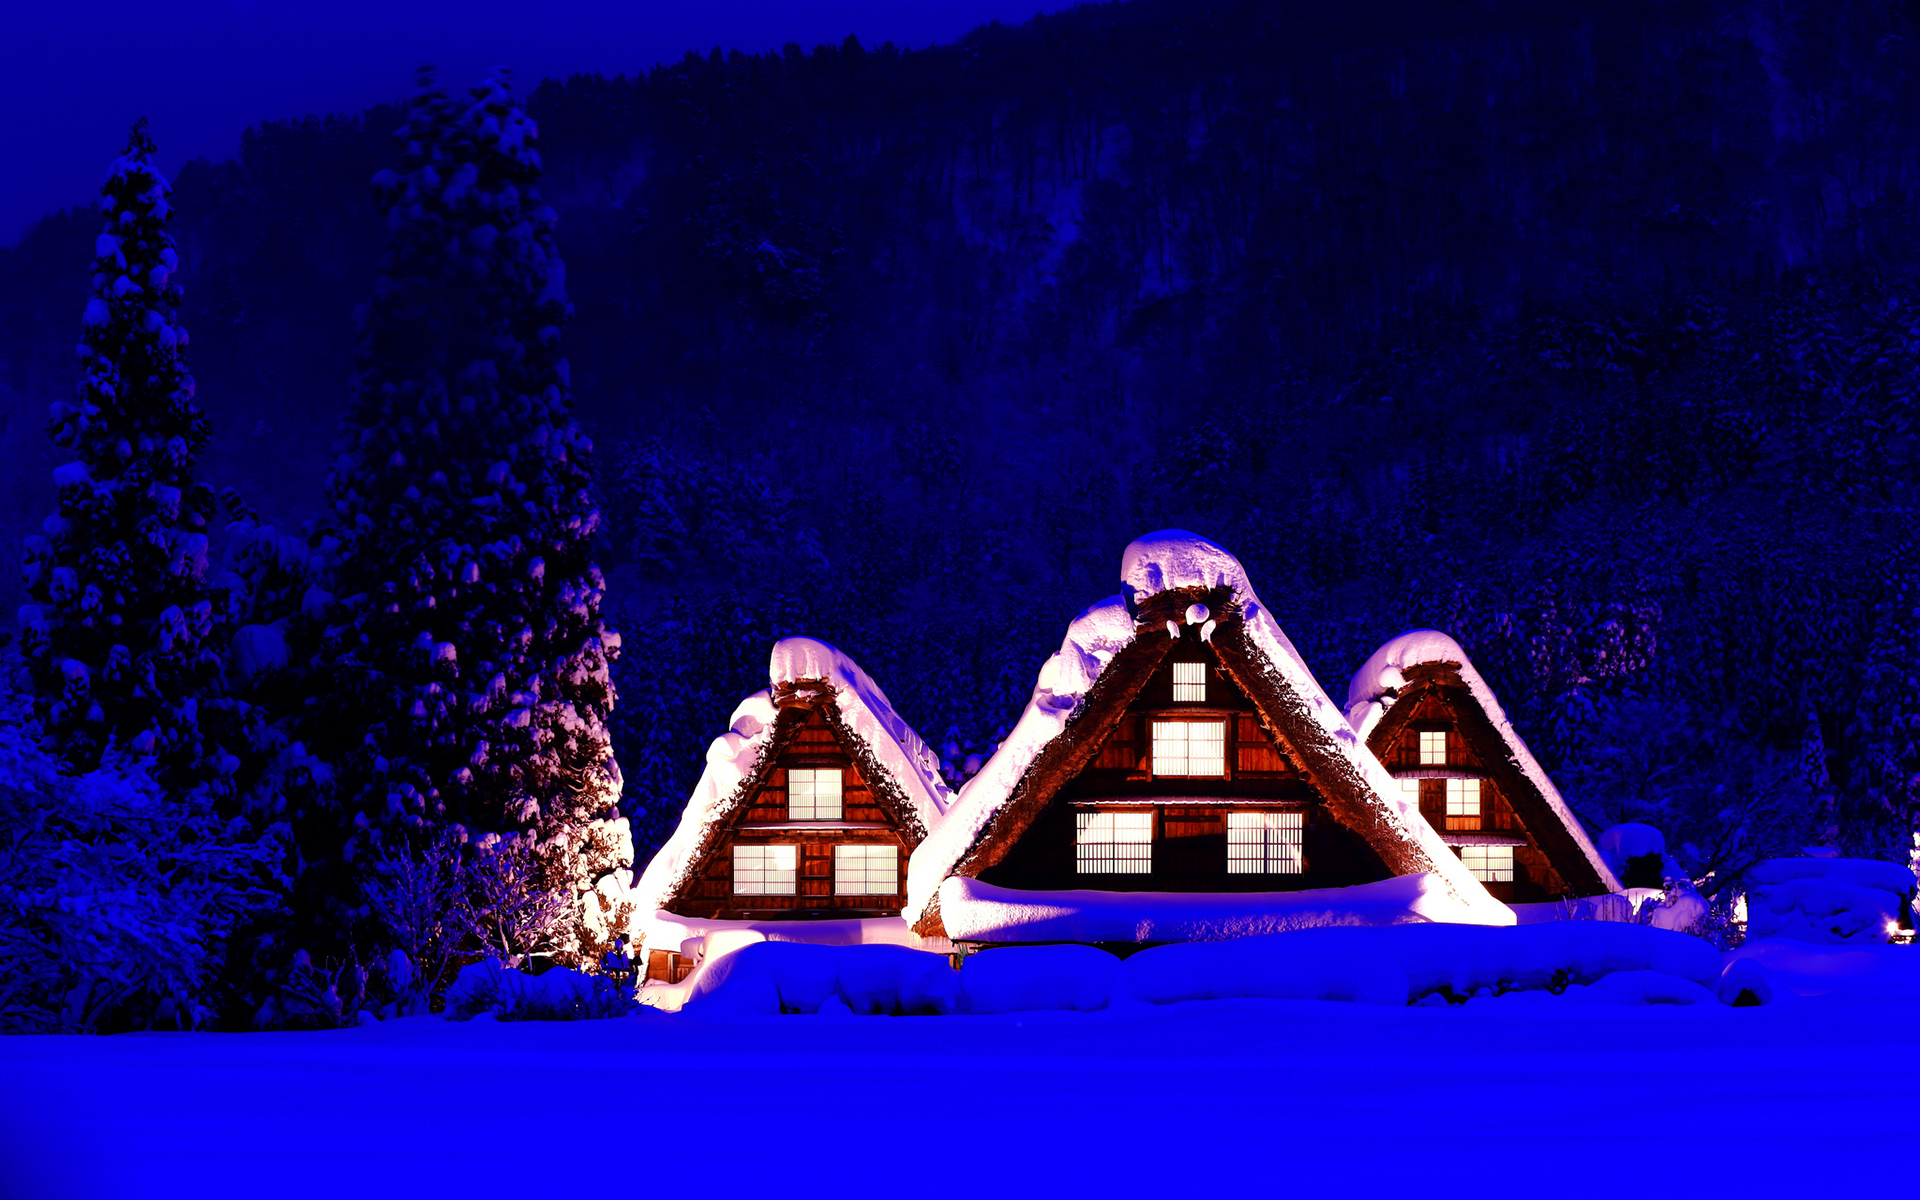 A Frame Cottage Houses Cabin Landscapes Winter Snow Christmas Wallpaper